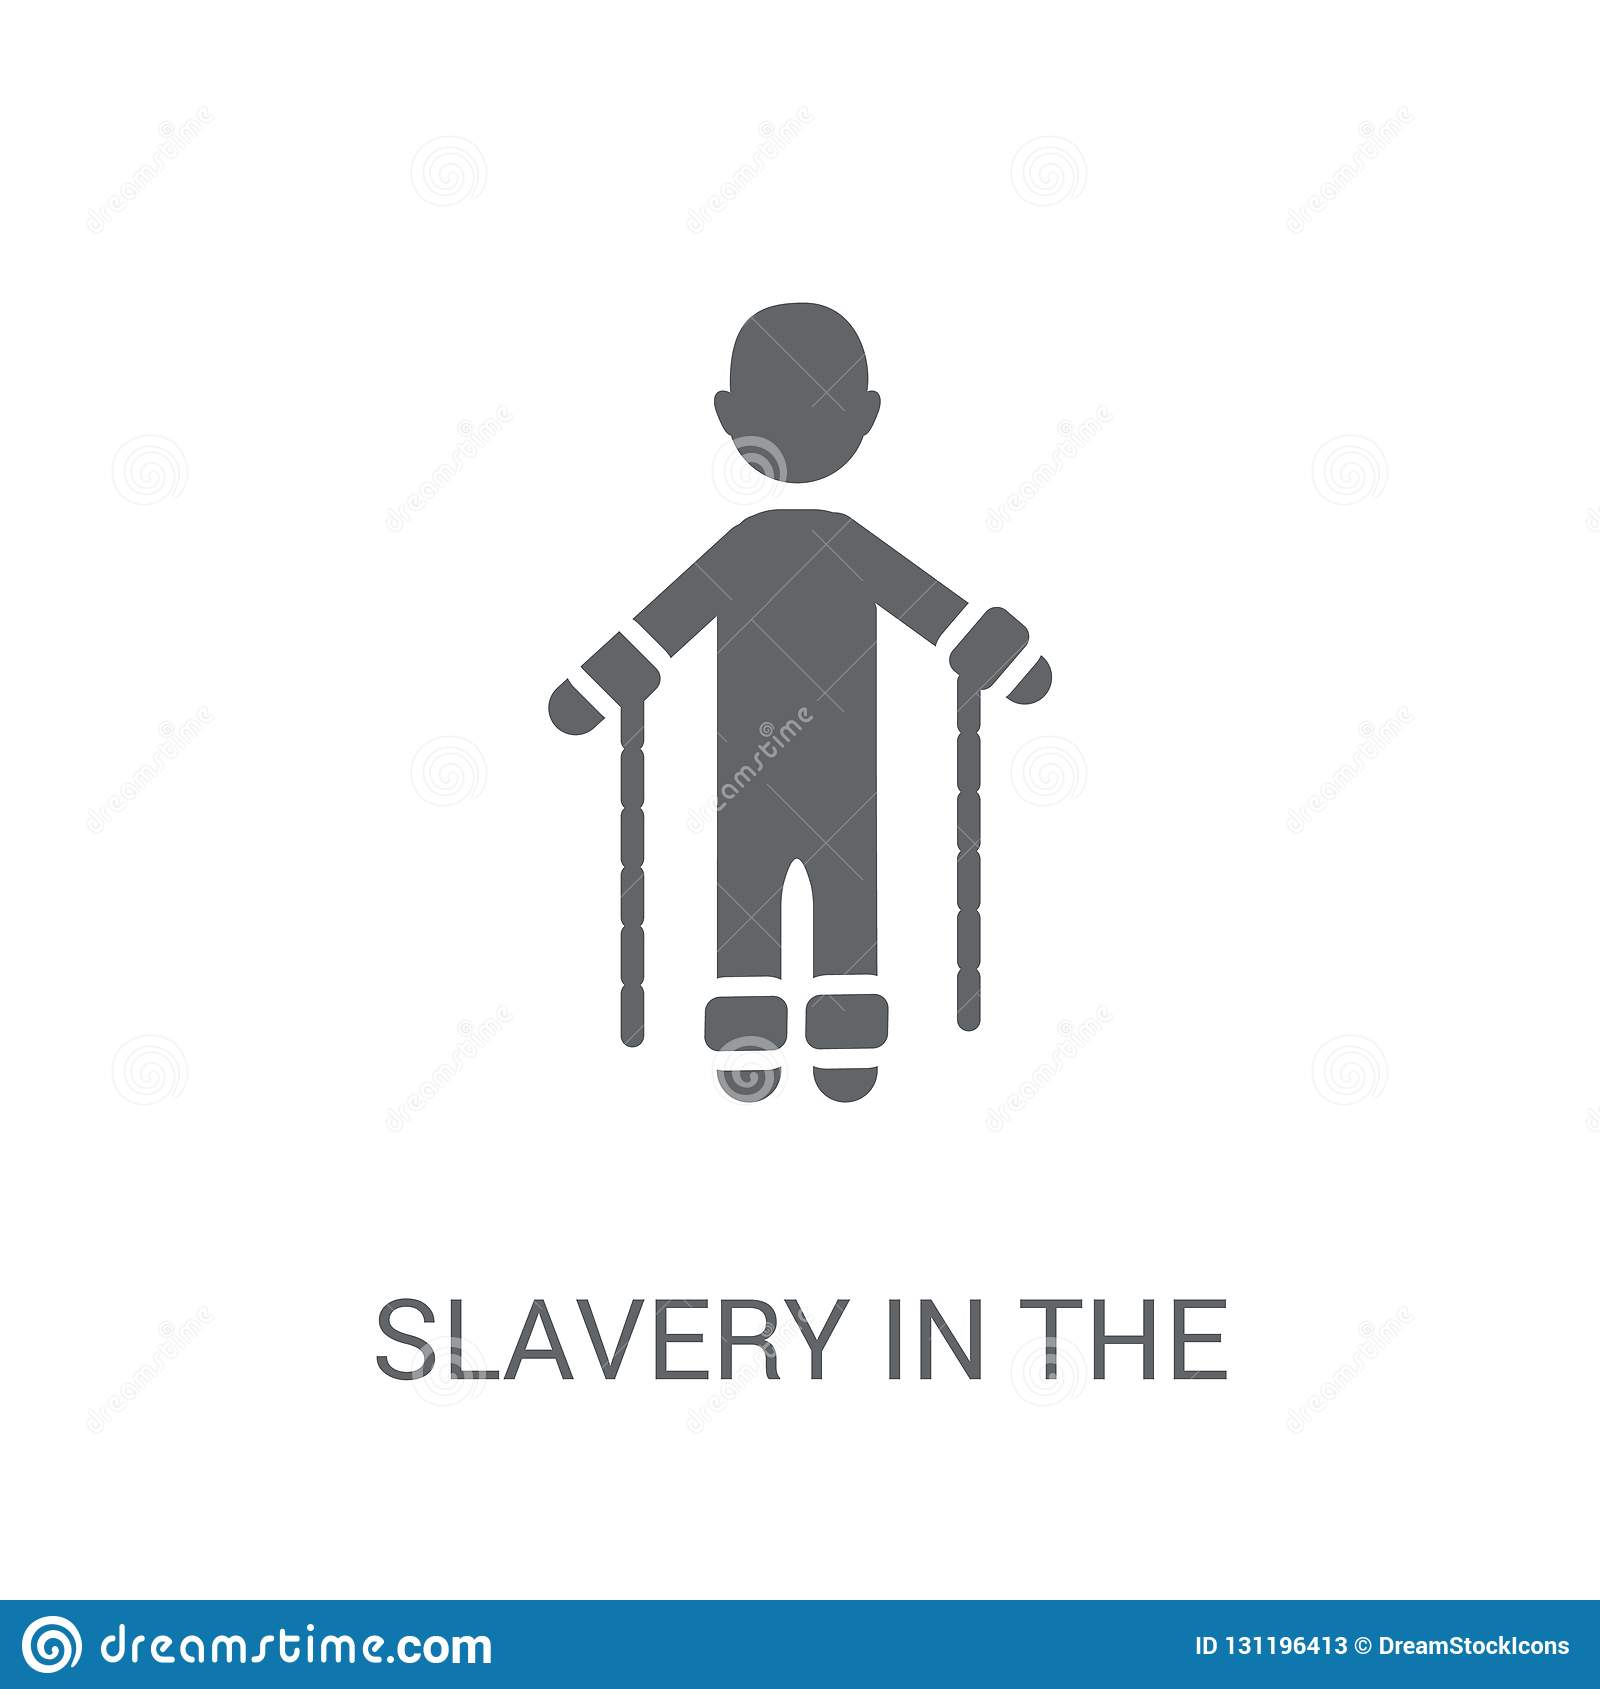 slavery in the united states icon. Trendy slavery in the united